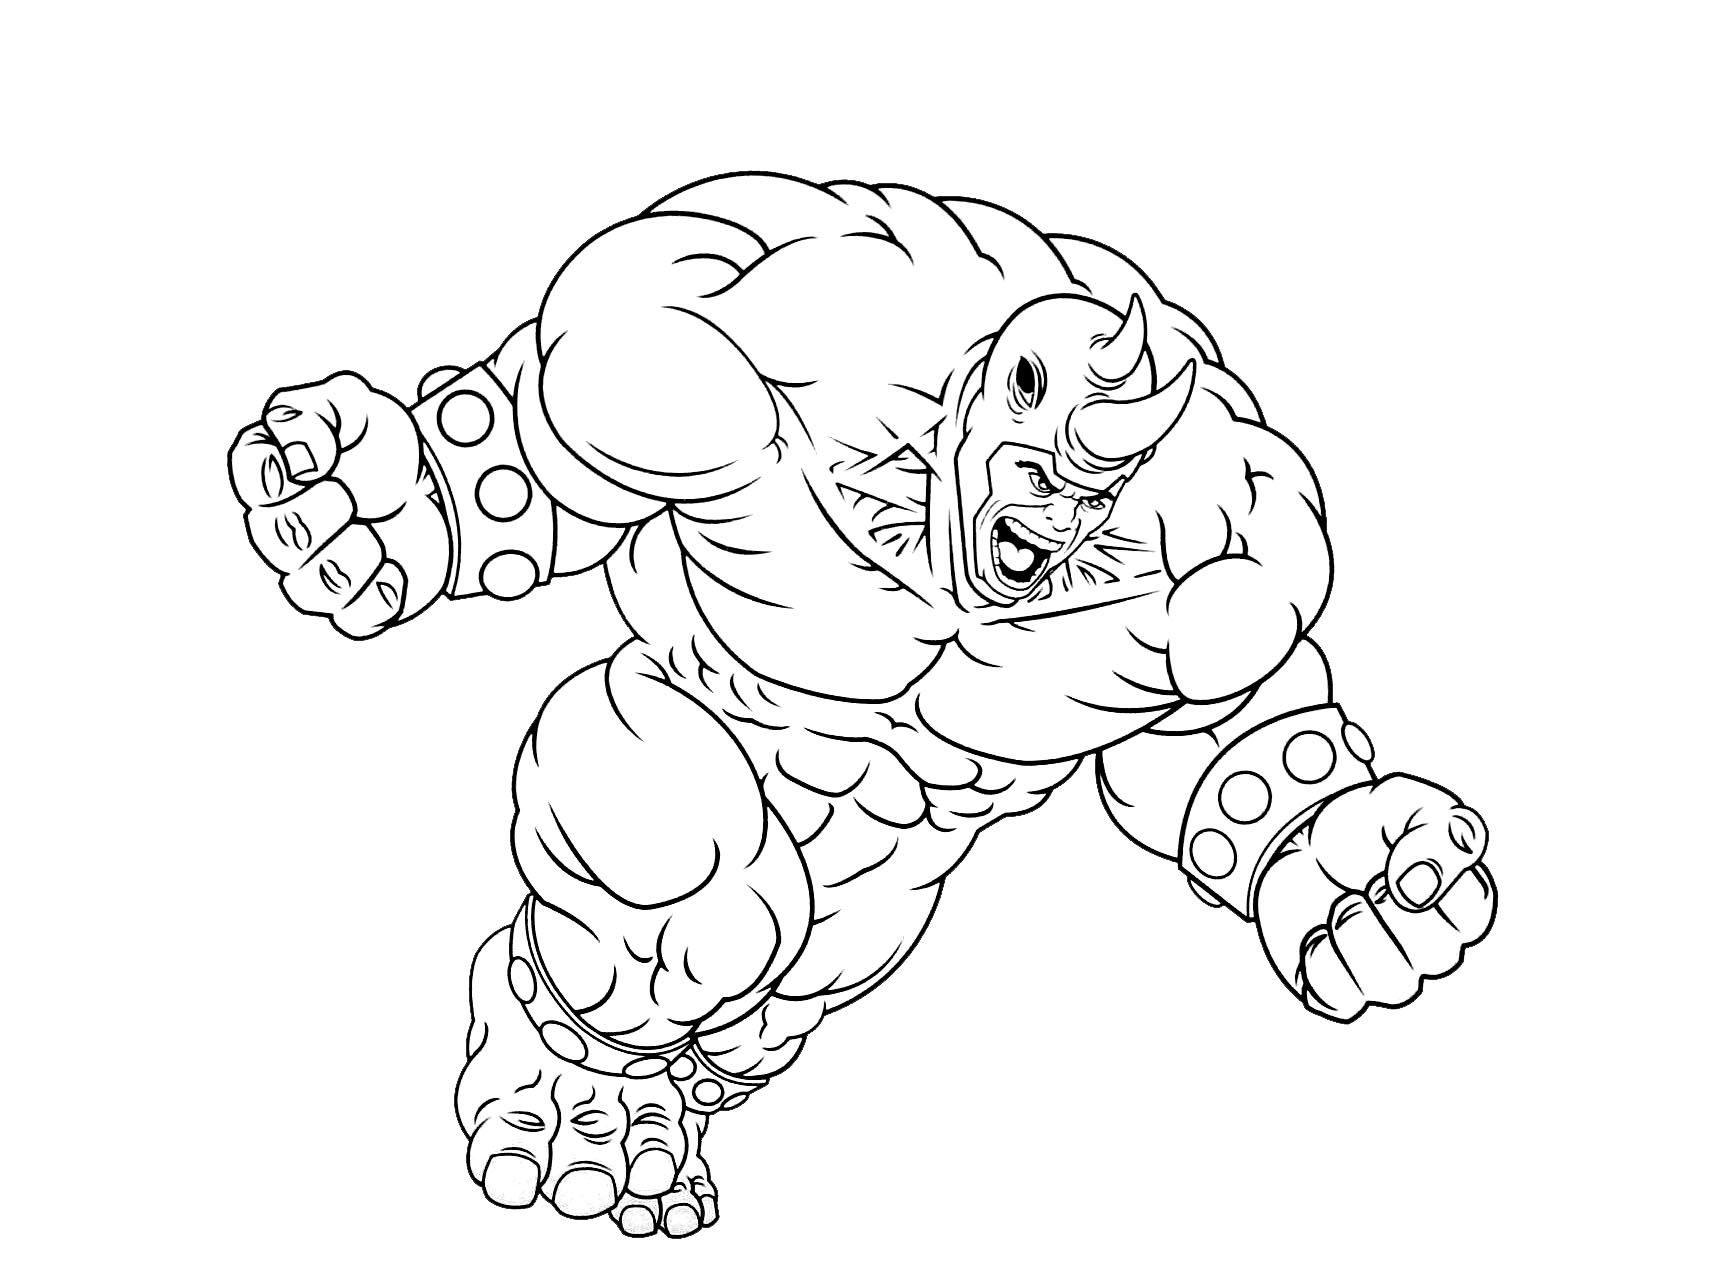 Spiderman gratuit 2 coloriage spiderman coloriages pour enfants - Coloriage spiderman 1 ...